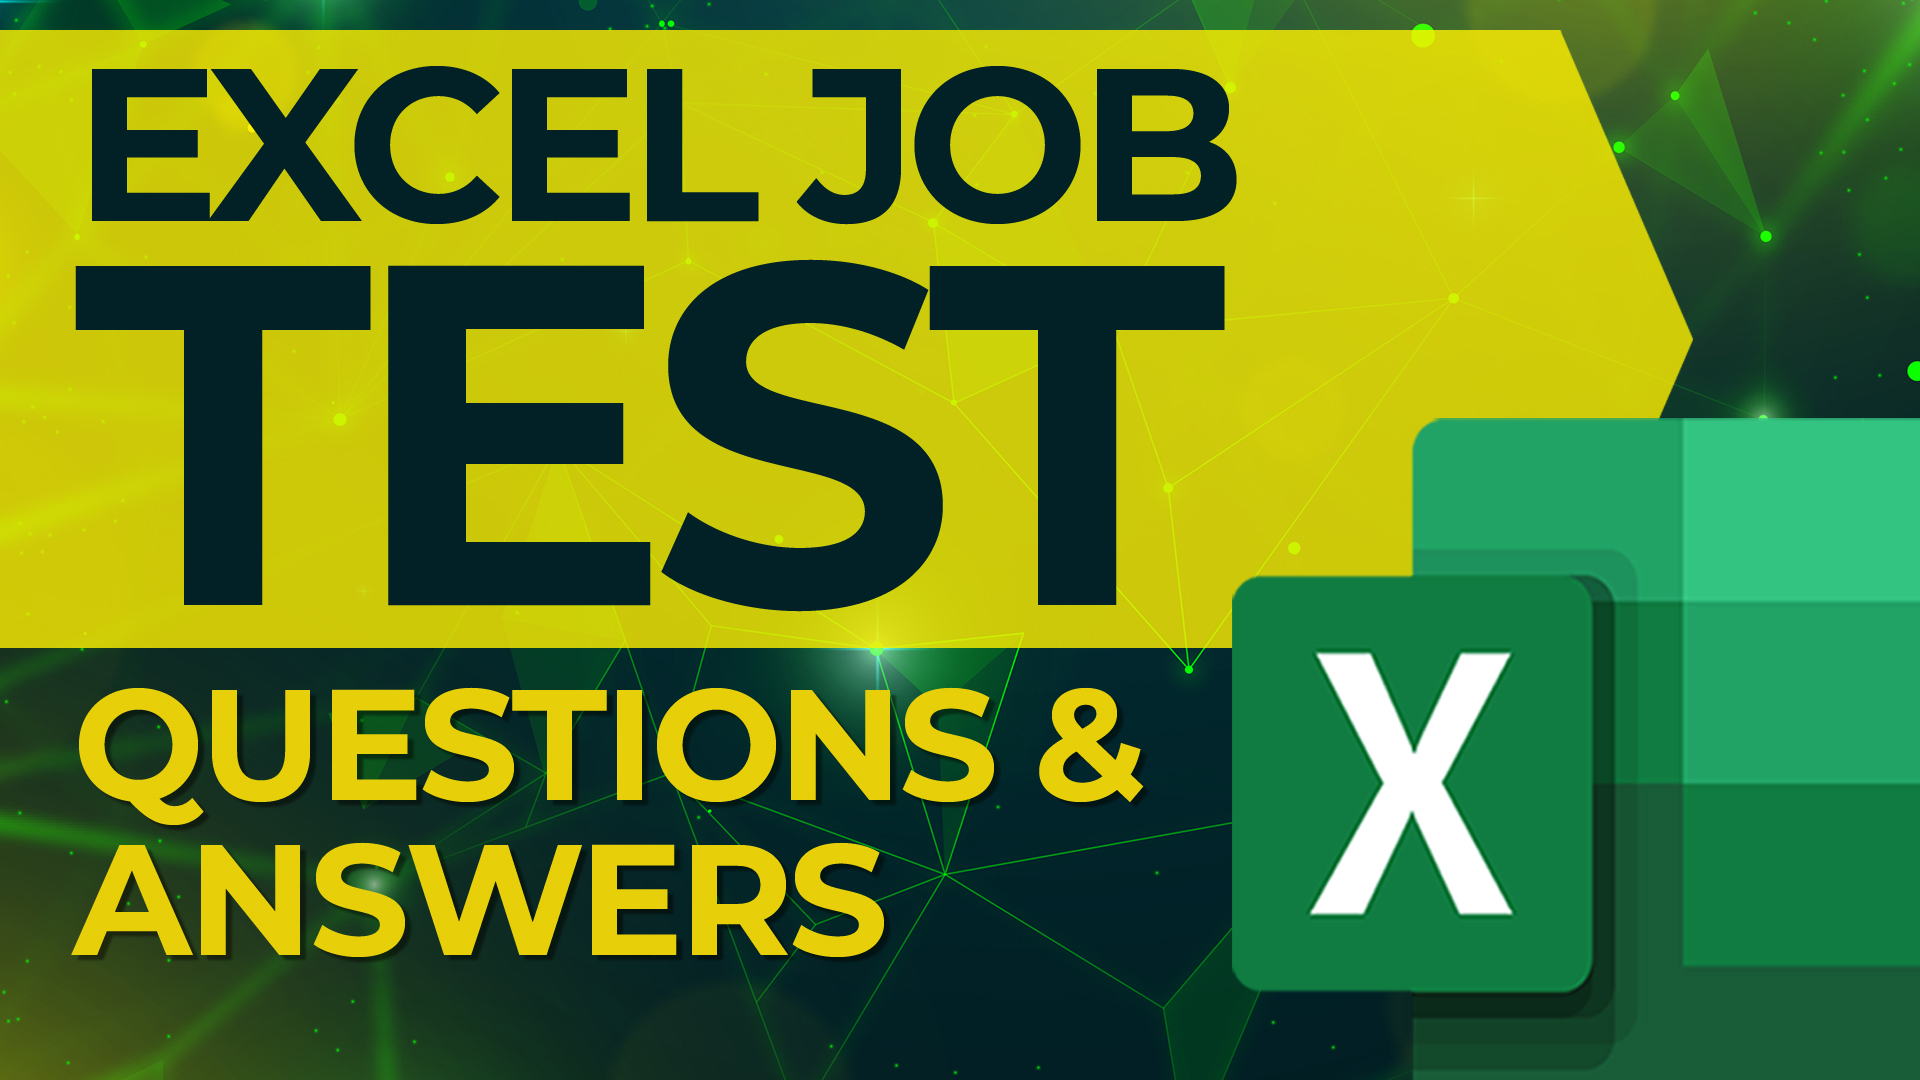 Excel-Job-Test-Questions-and-Answers-v1